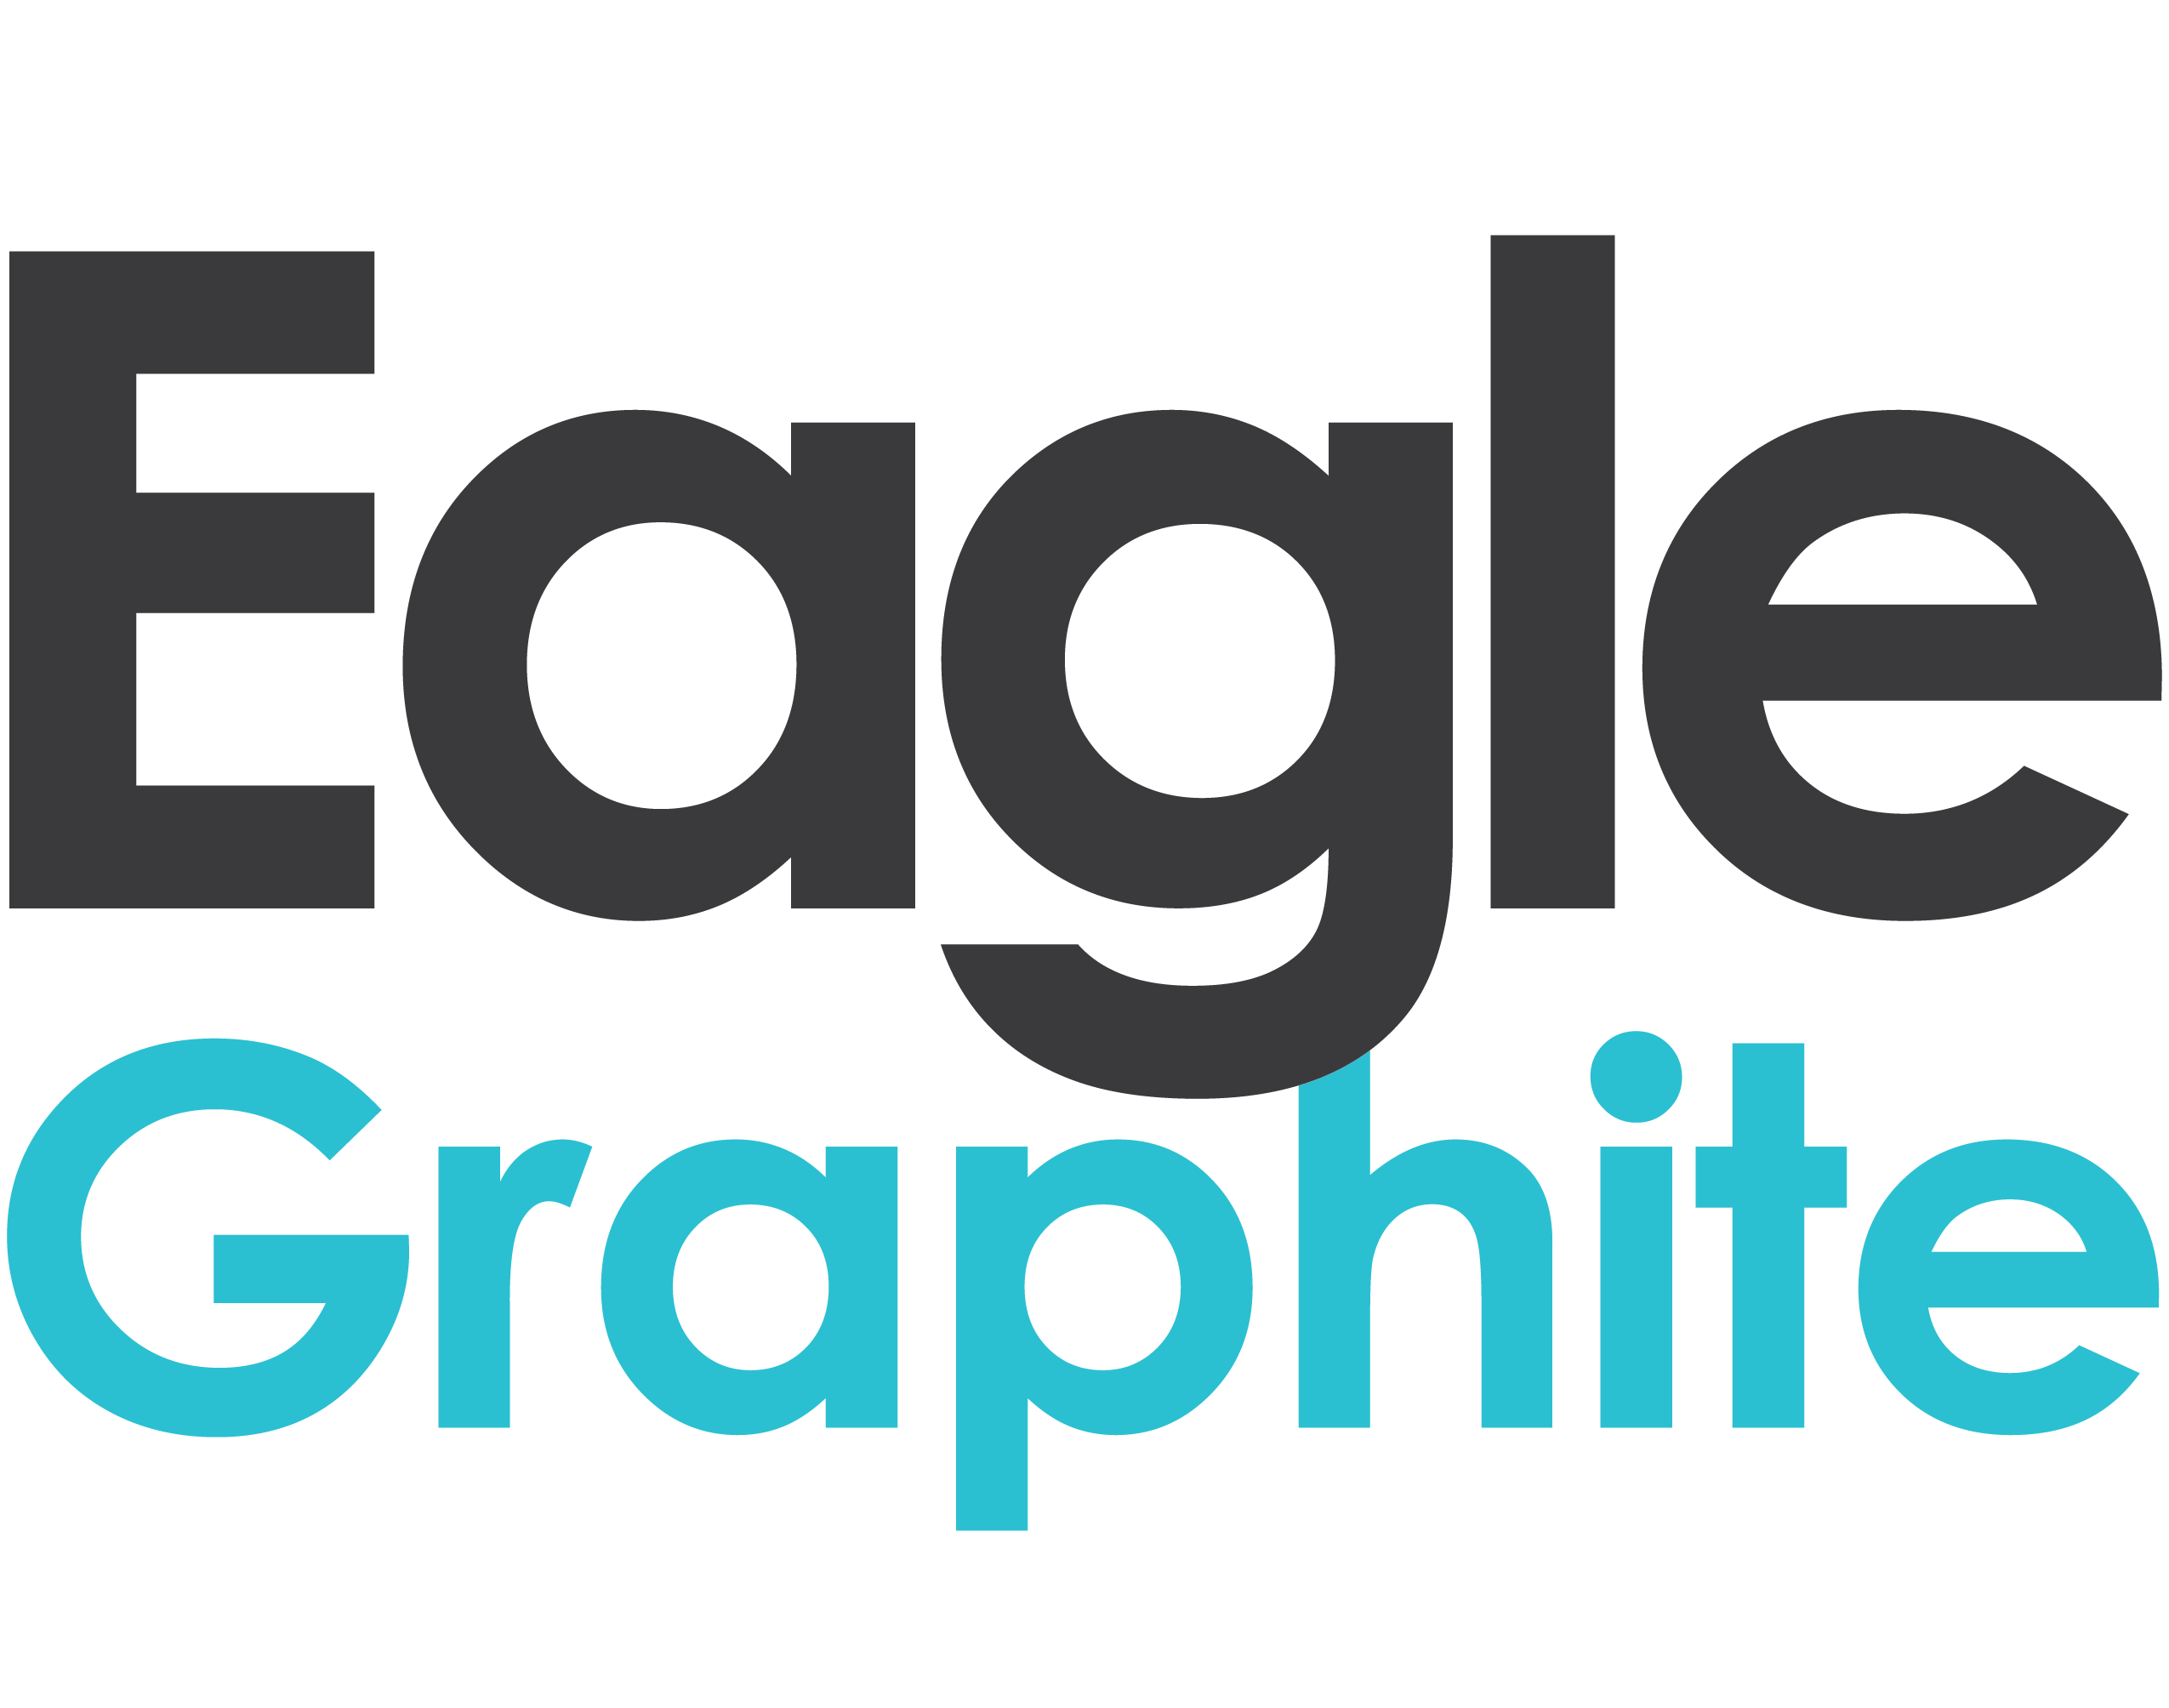 Eagle Graphite Incorporated company